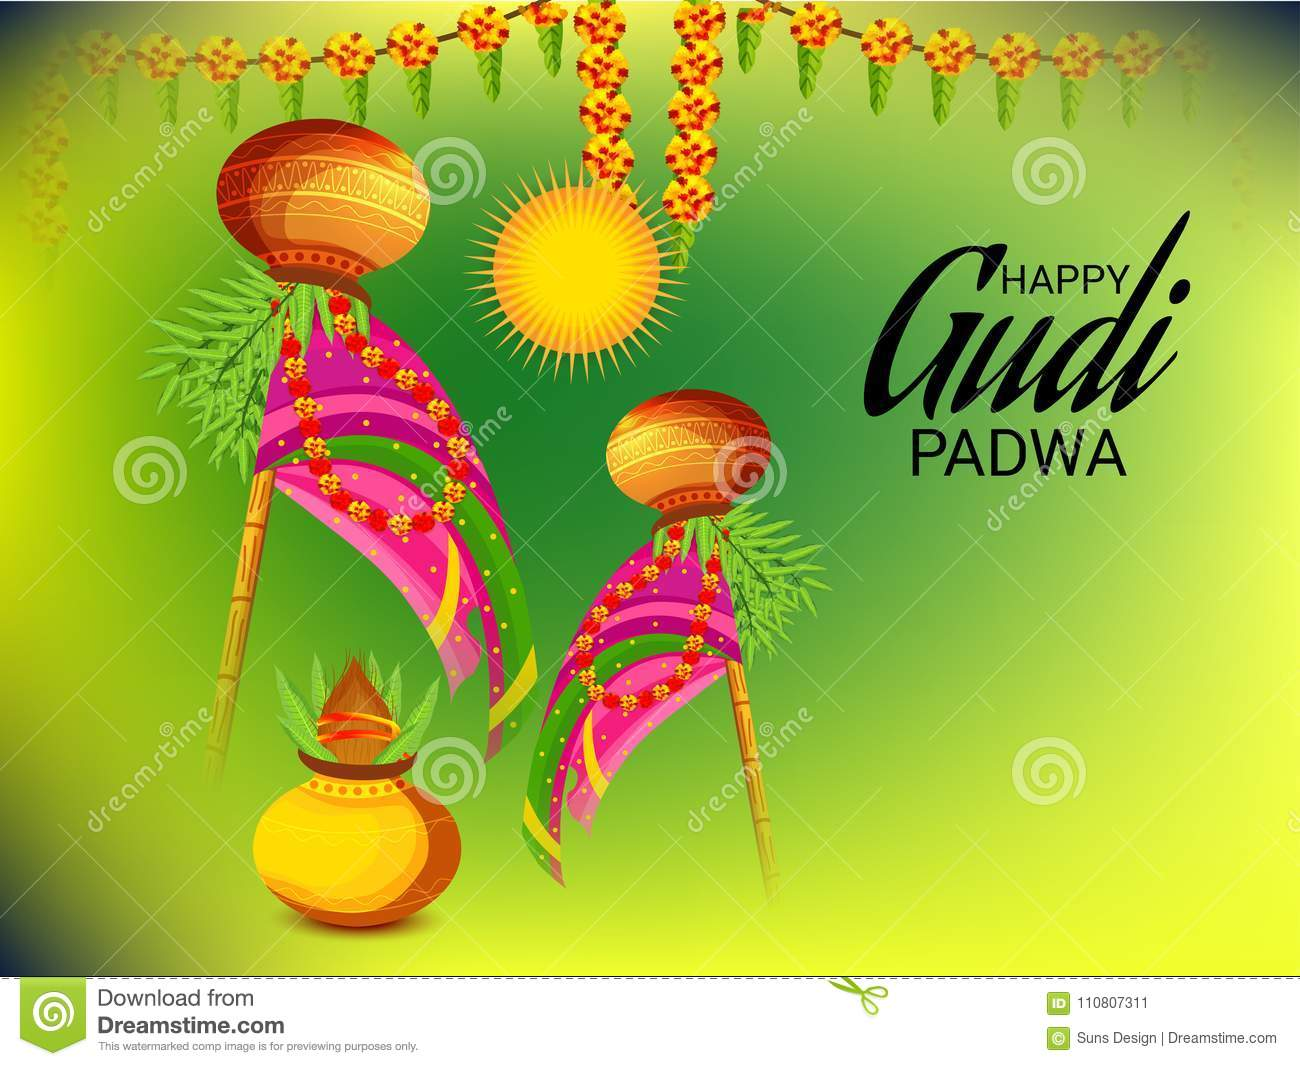 happy gudi padwa marathi new year